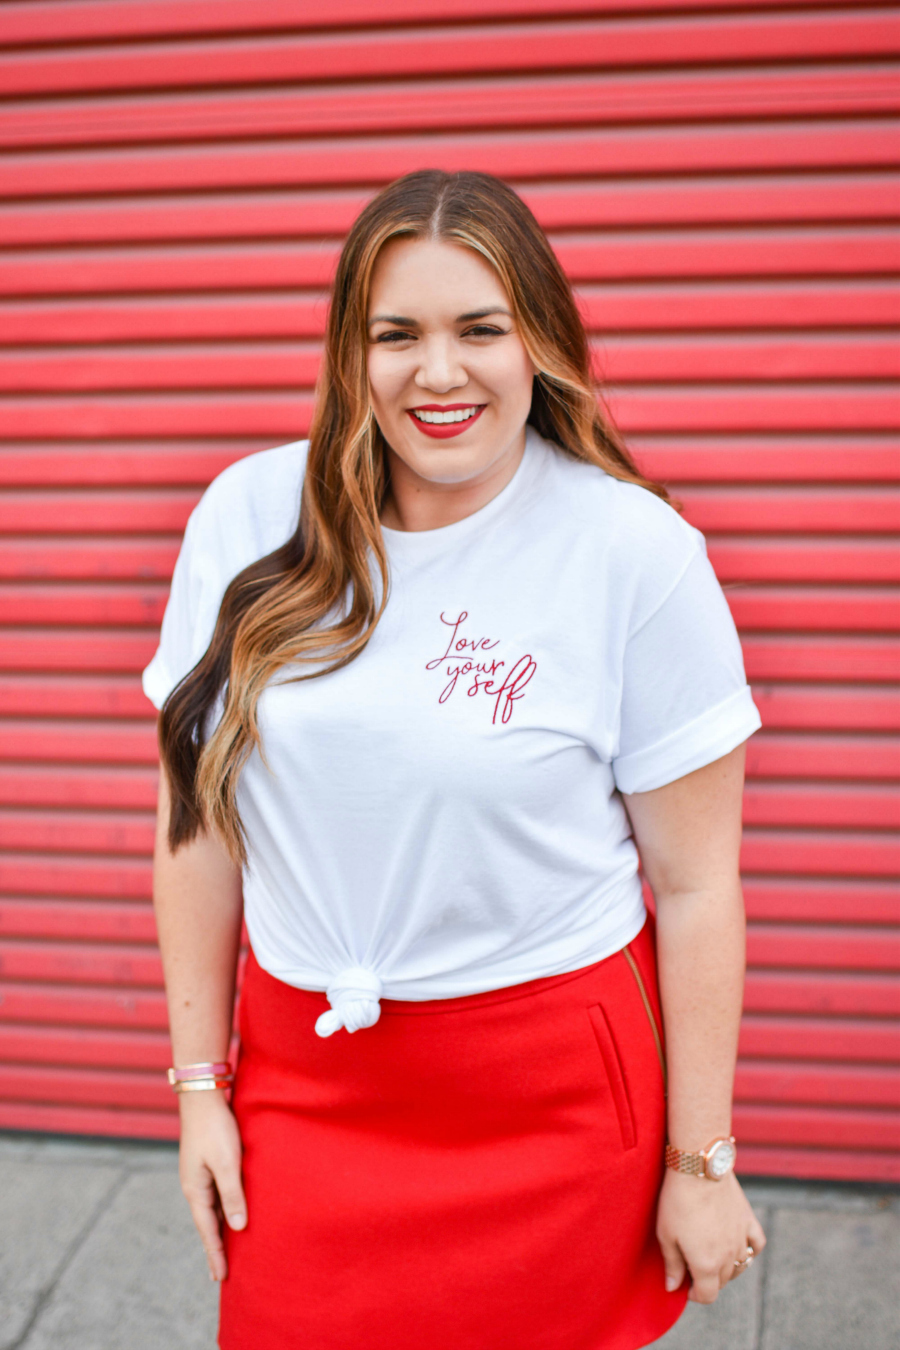 Sarah Sassy Red Lipstick Love Yourself Shirt by Friday Apparel